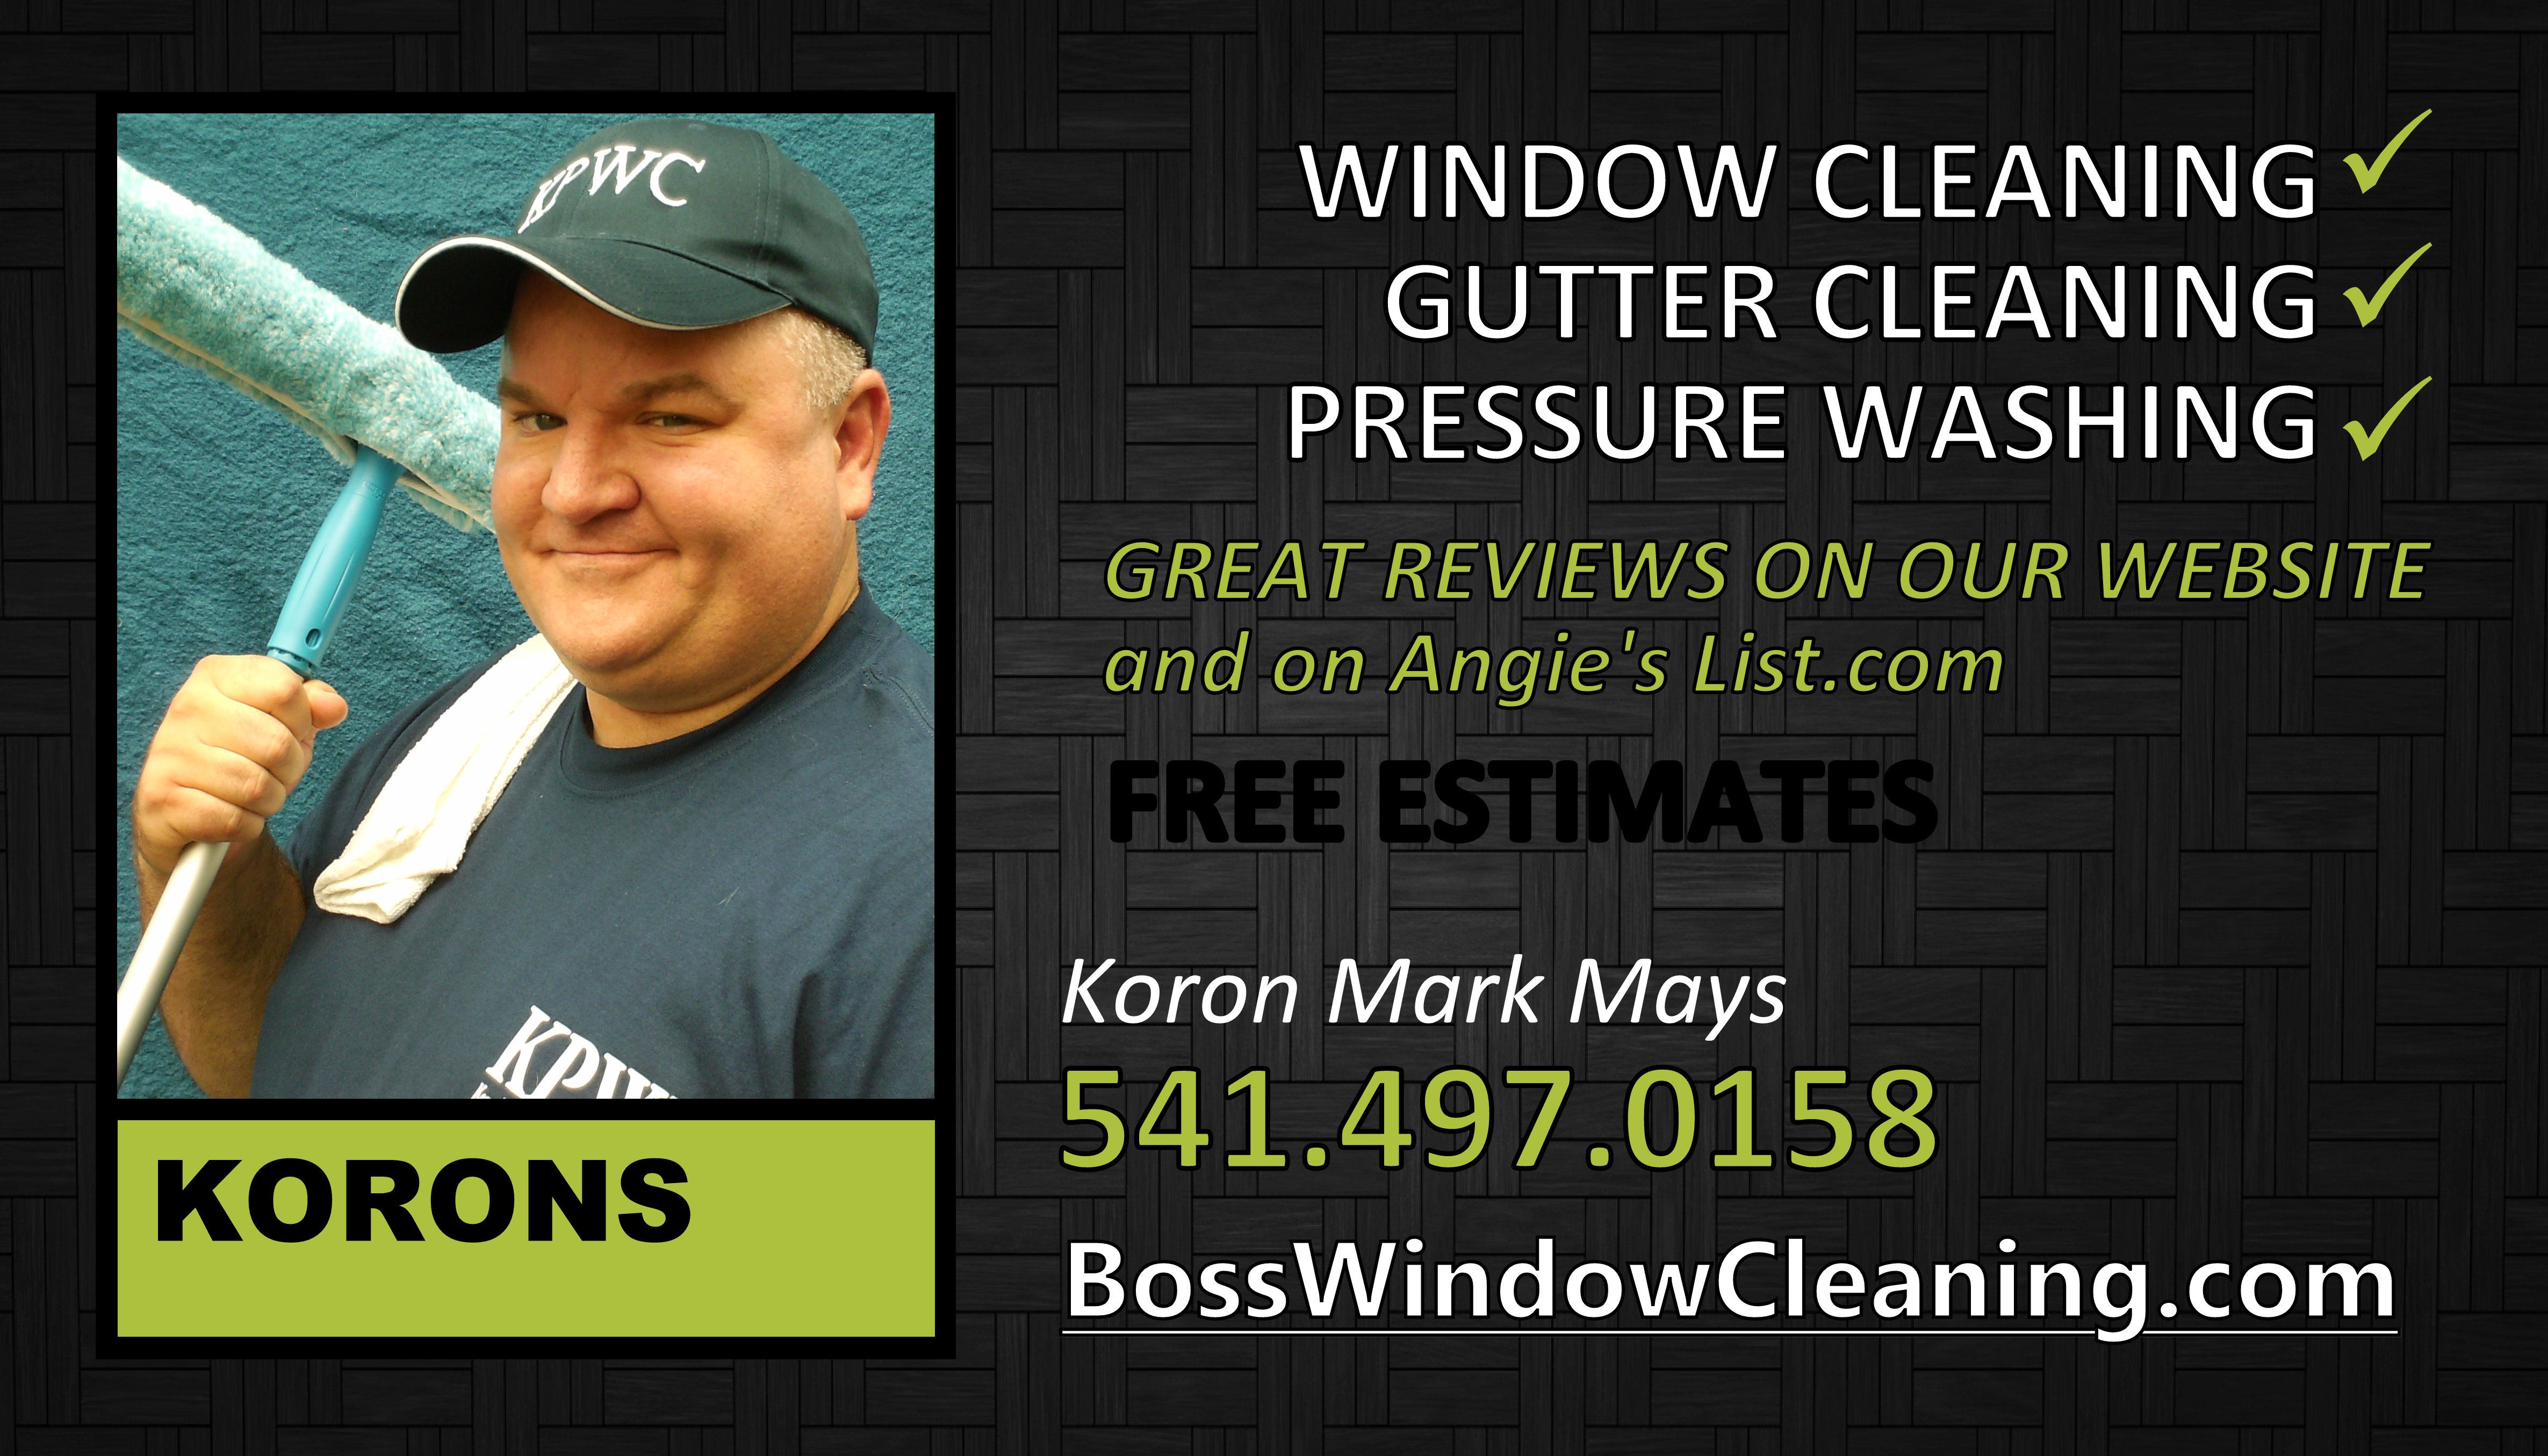 window cleaning business card korons pinterest